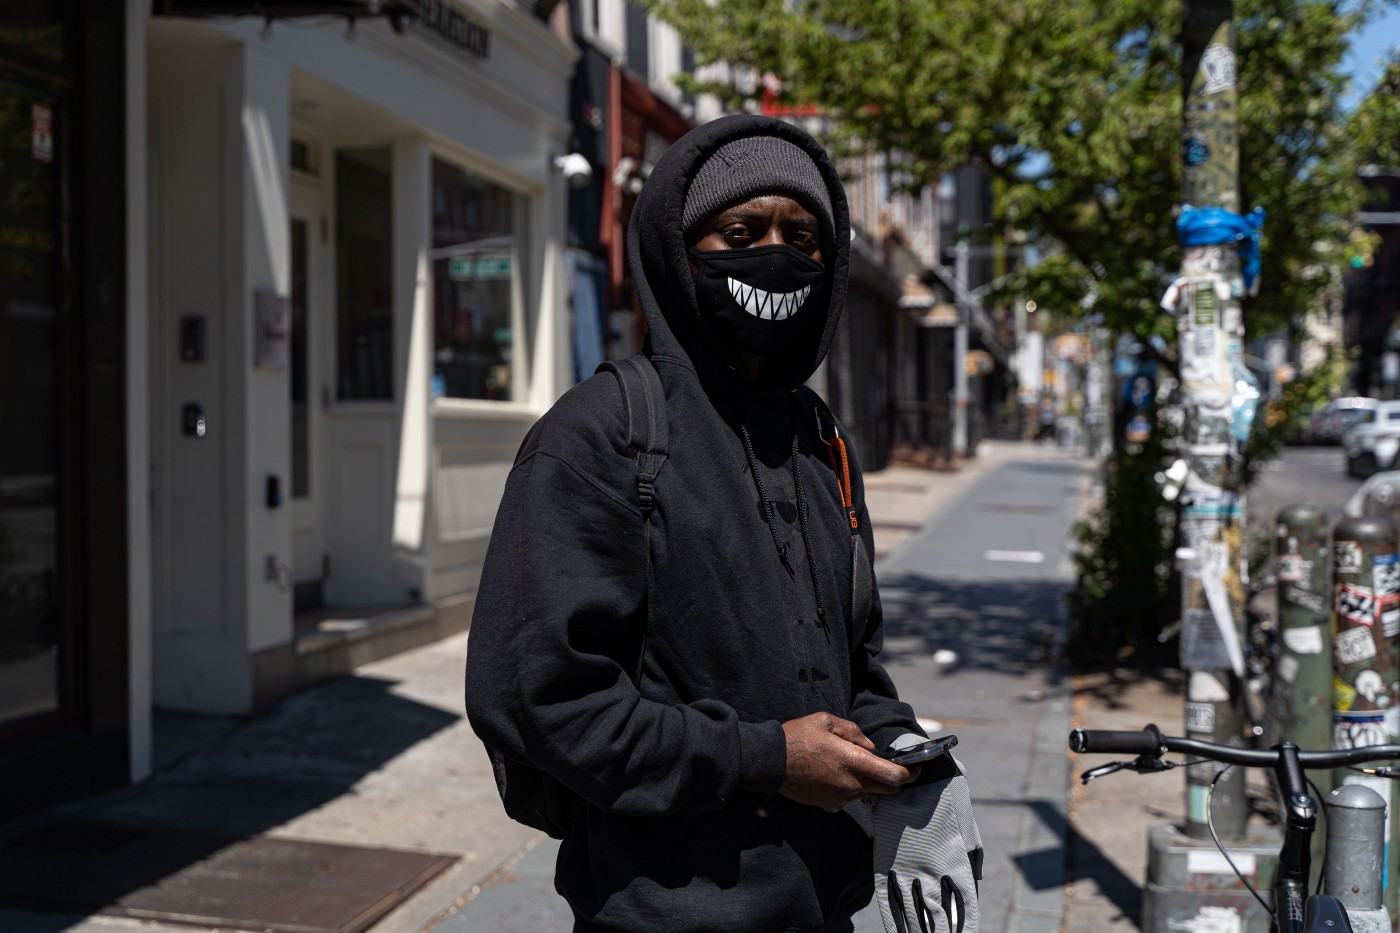 A black man poses for the photo wearing a dark hoodie, black face mask, beanie.